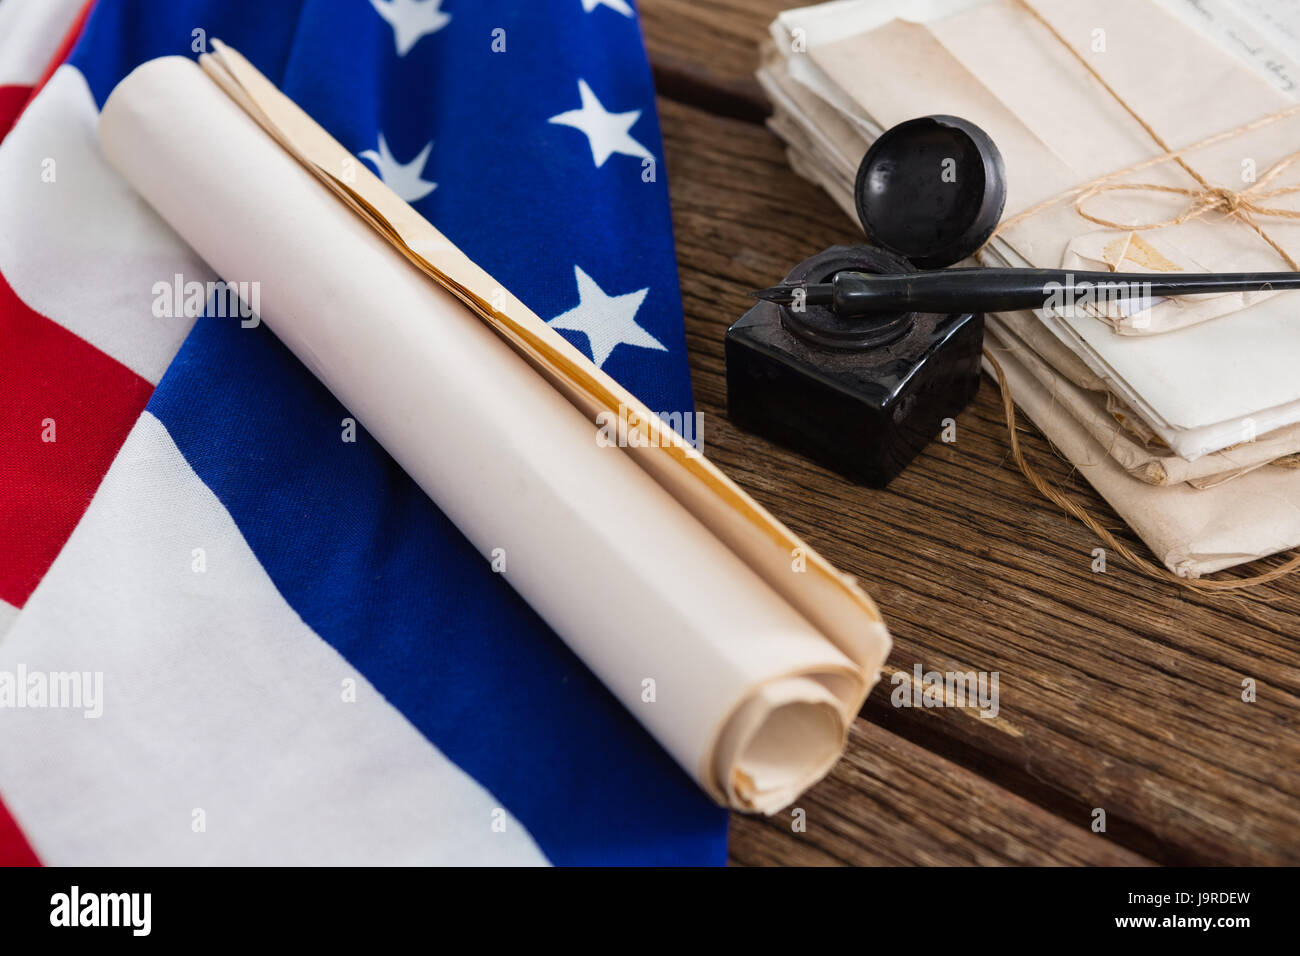 American Flag With Rolled Up Of Constitution Document On Wooden Table